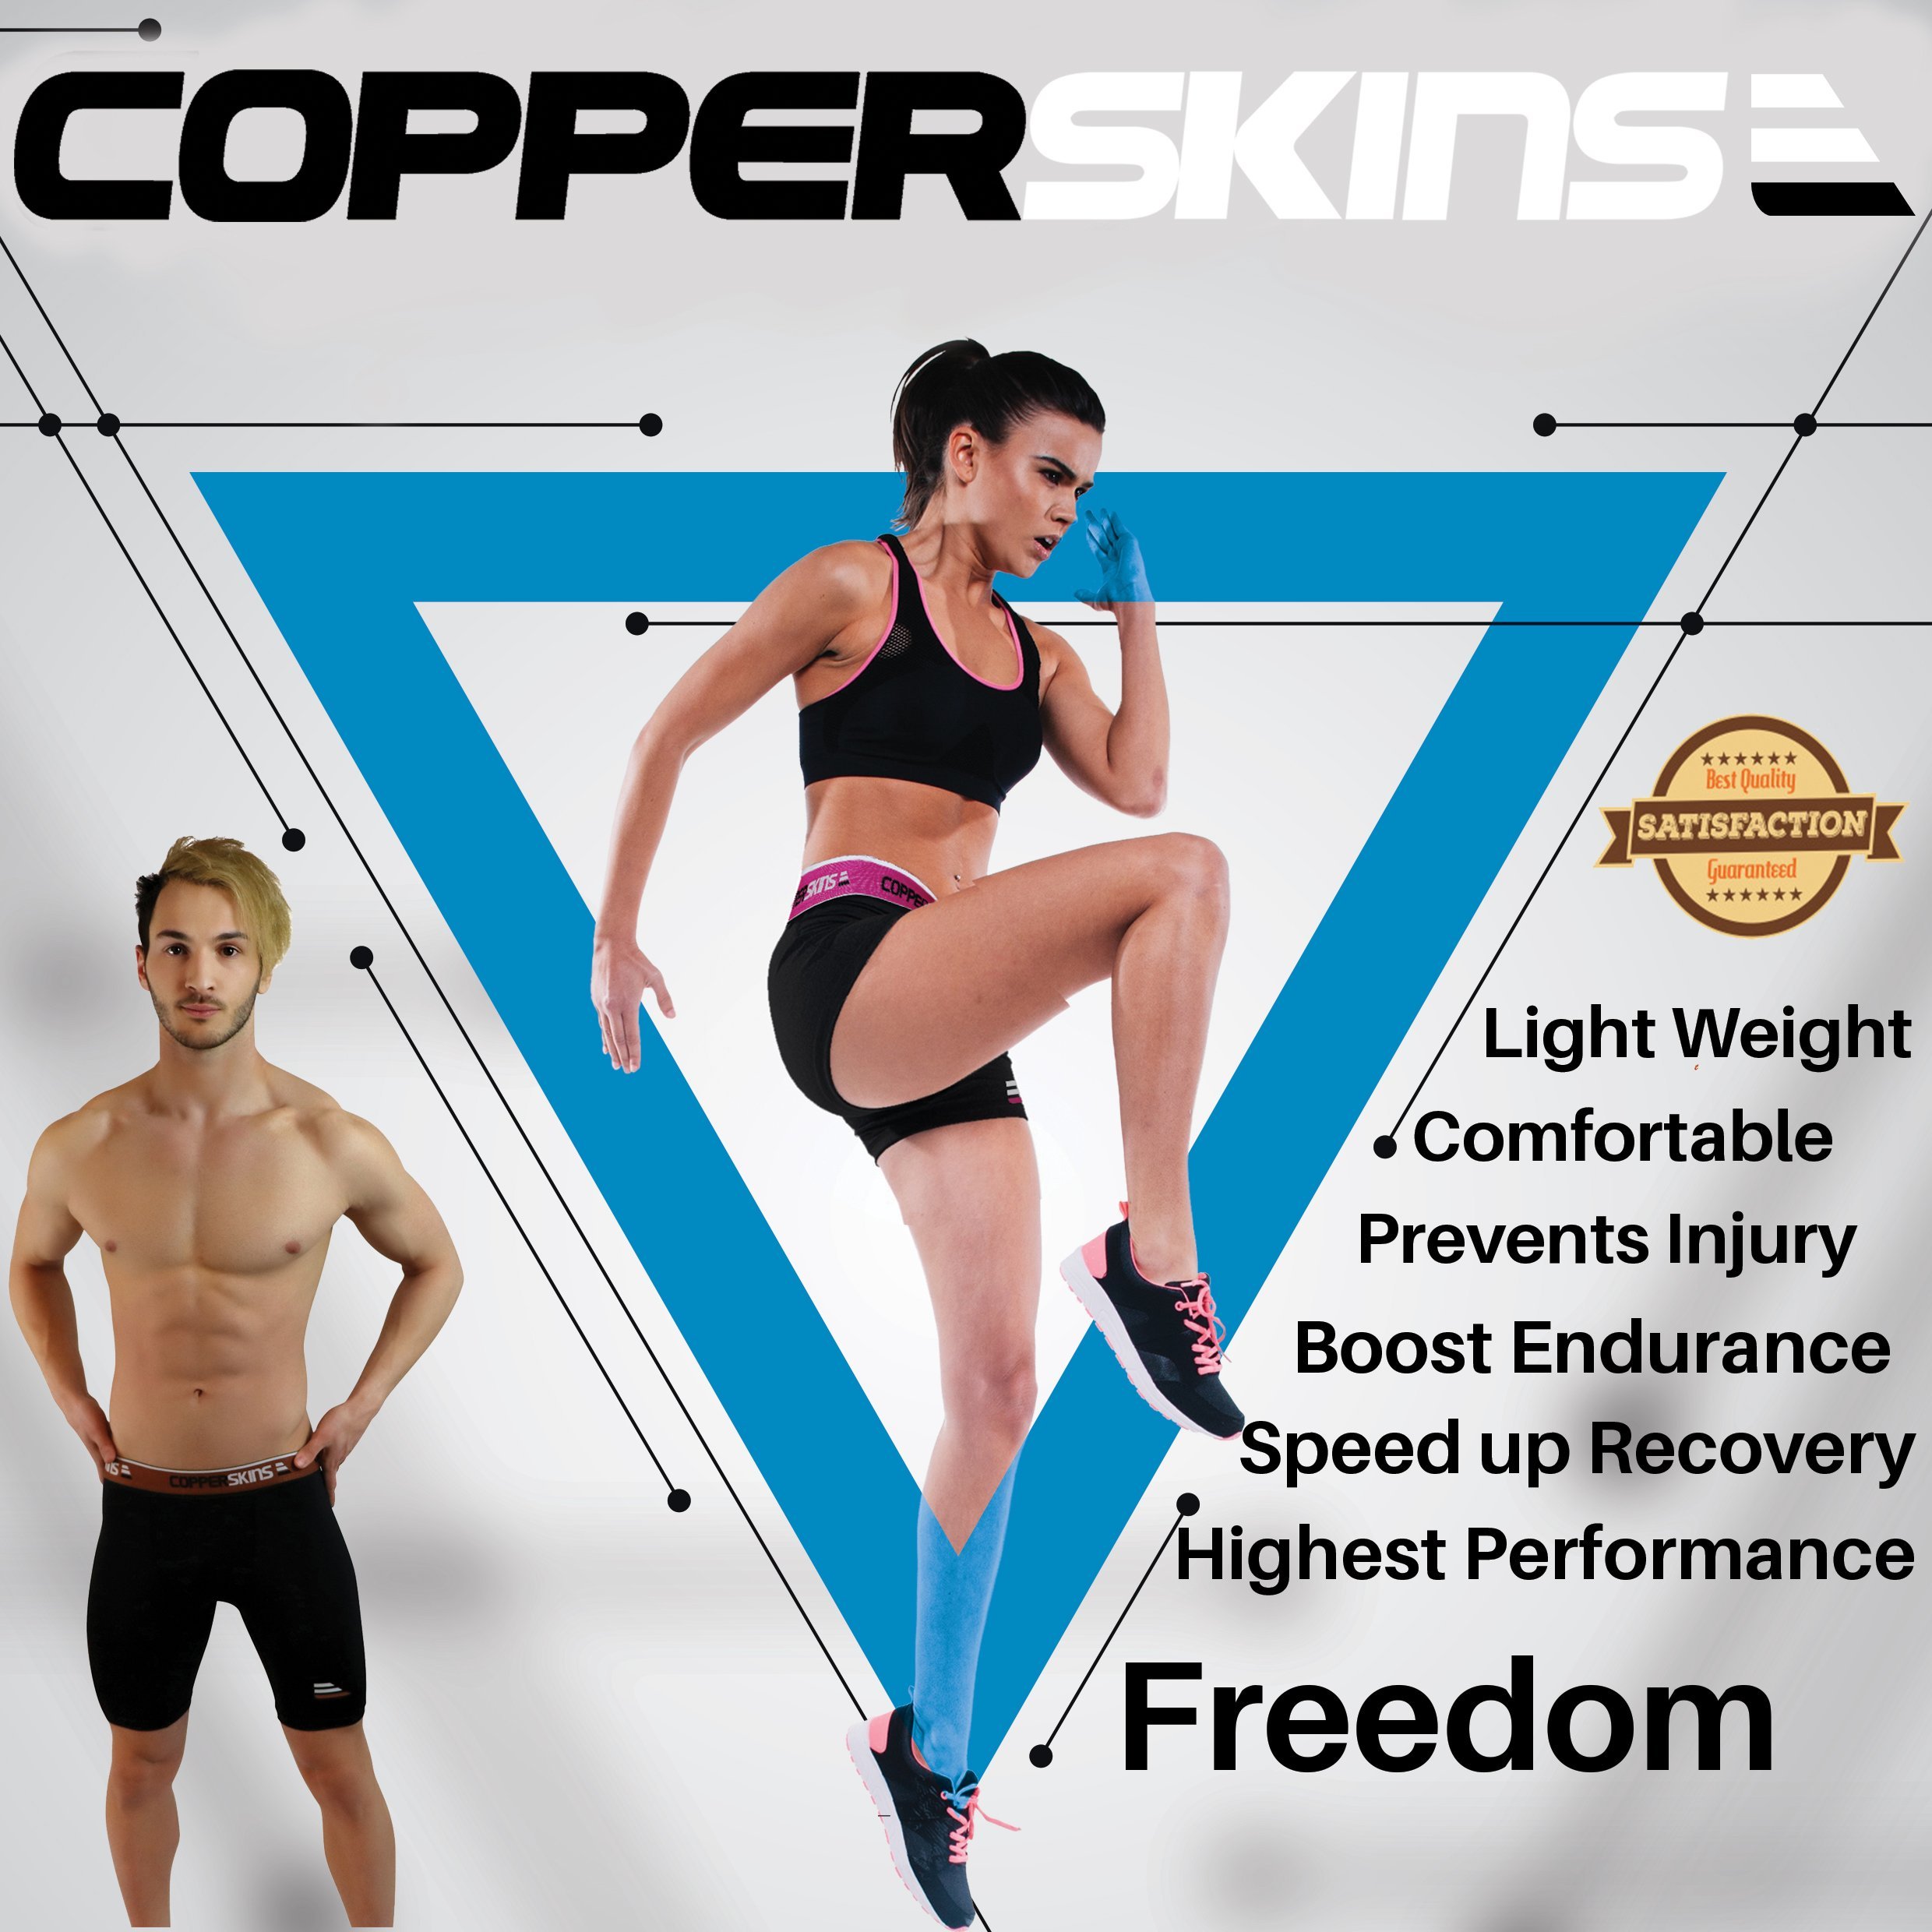 Copper Compression Shorts for Women - 3'' Black Spandex - Base Layer (X Large) by Copperskins (Image #6)